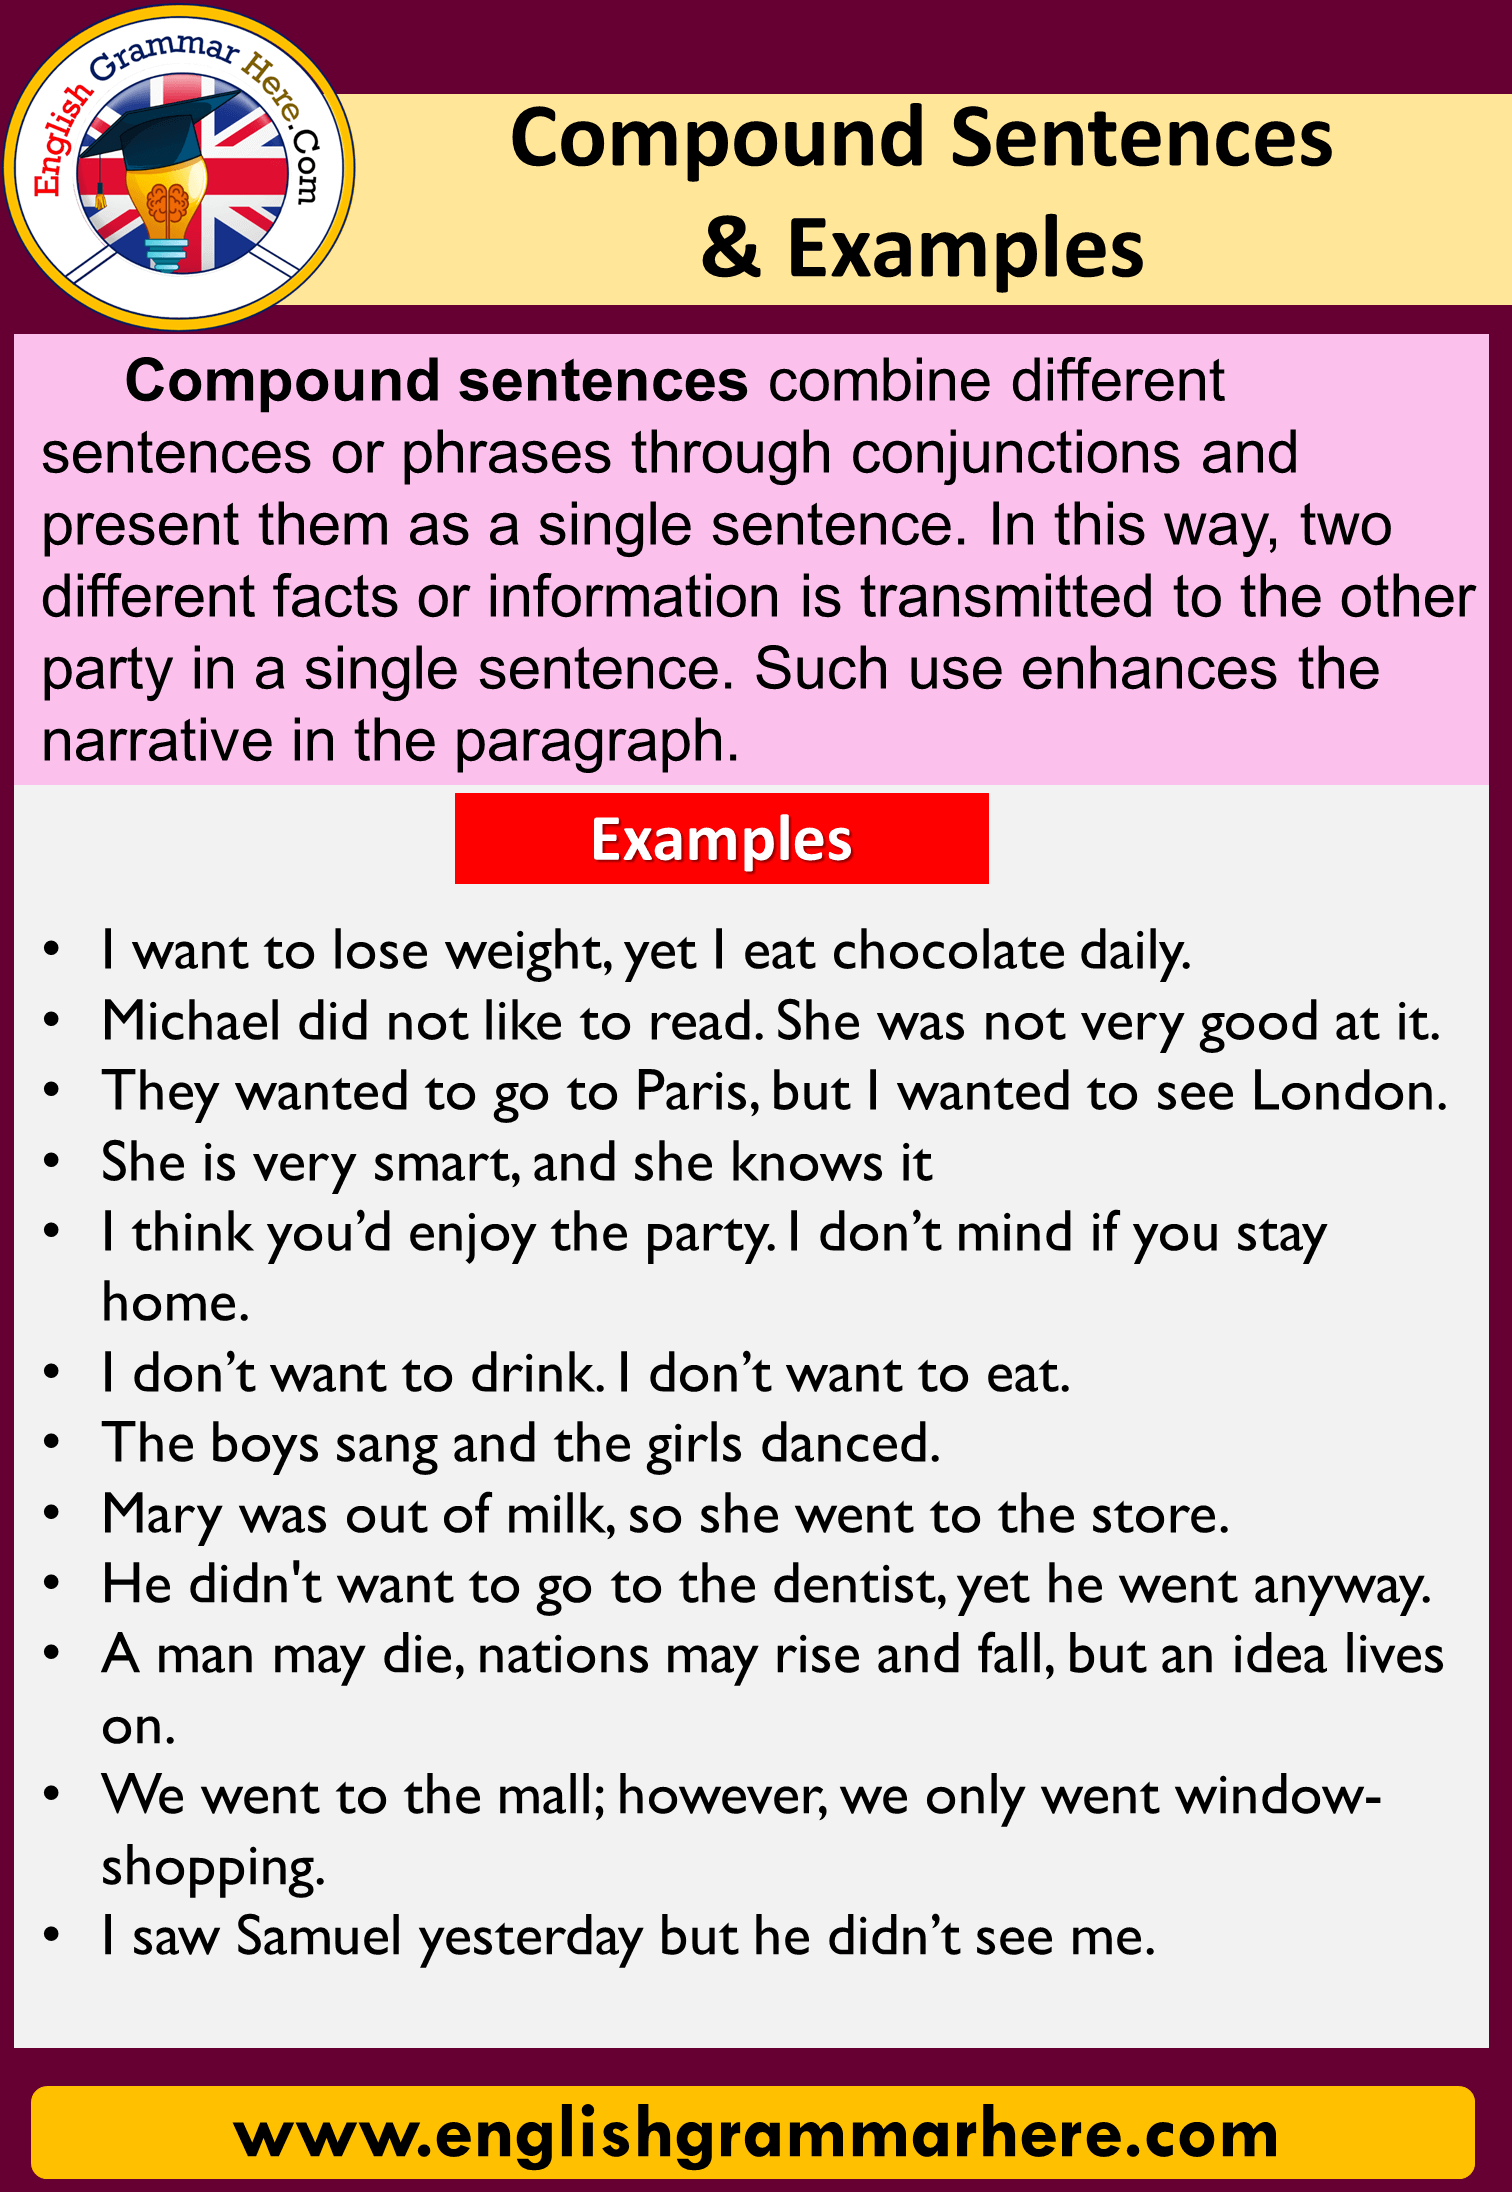 English Compound Sentences and Examples